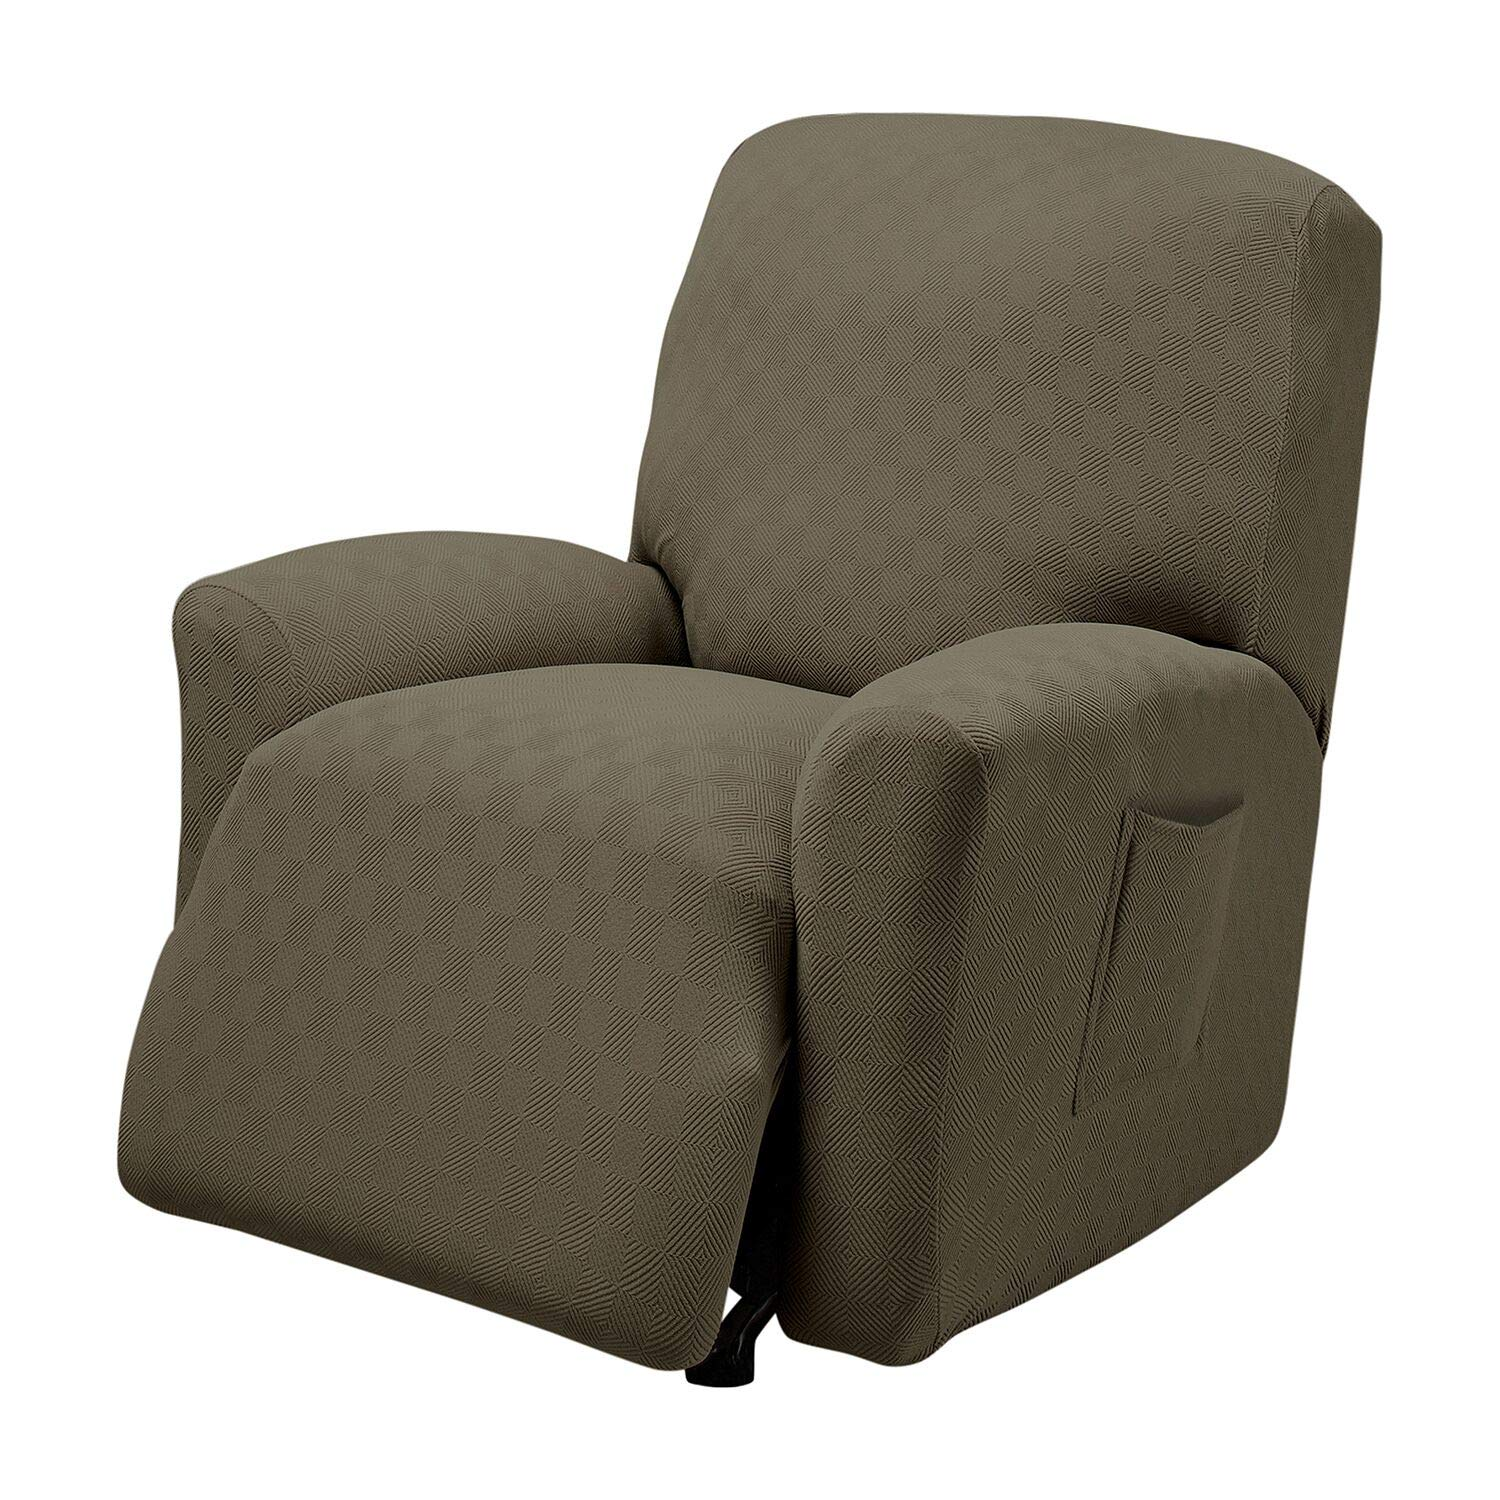 Stretch Sensations, Newport Recliner Slipcover, Standard Recliners, Perfect Chair Protection, Comfortable and Easy Stretch Fabric (Sage) by Stretch Sensations